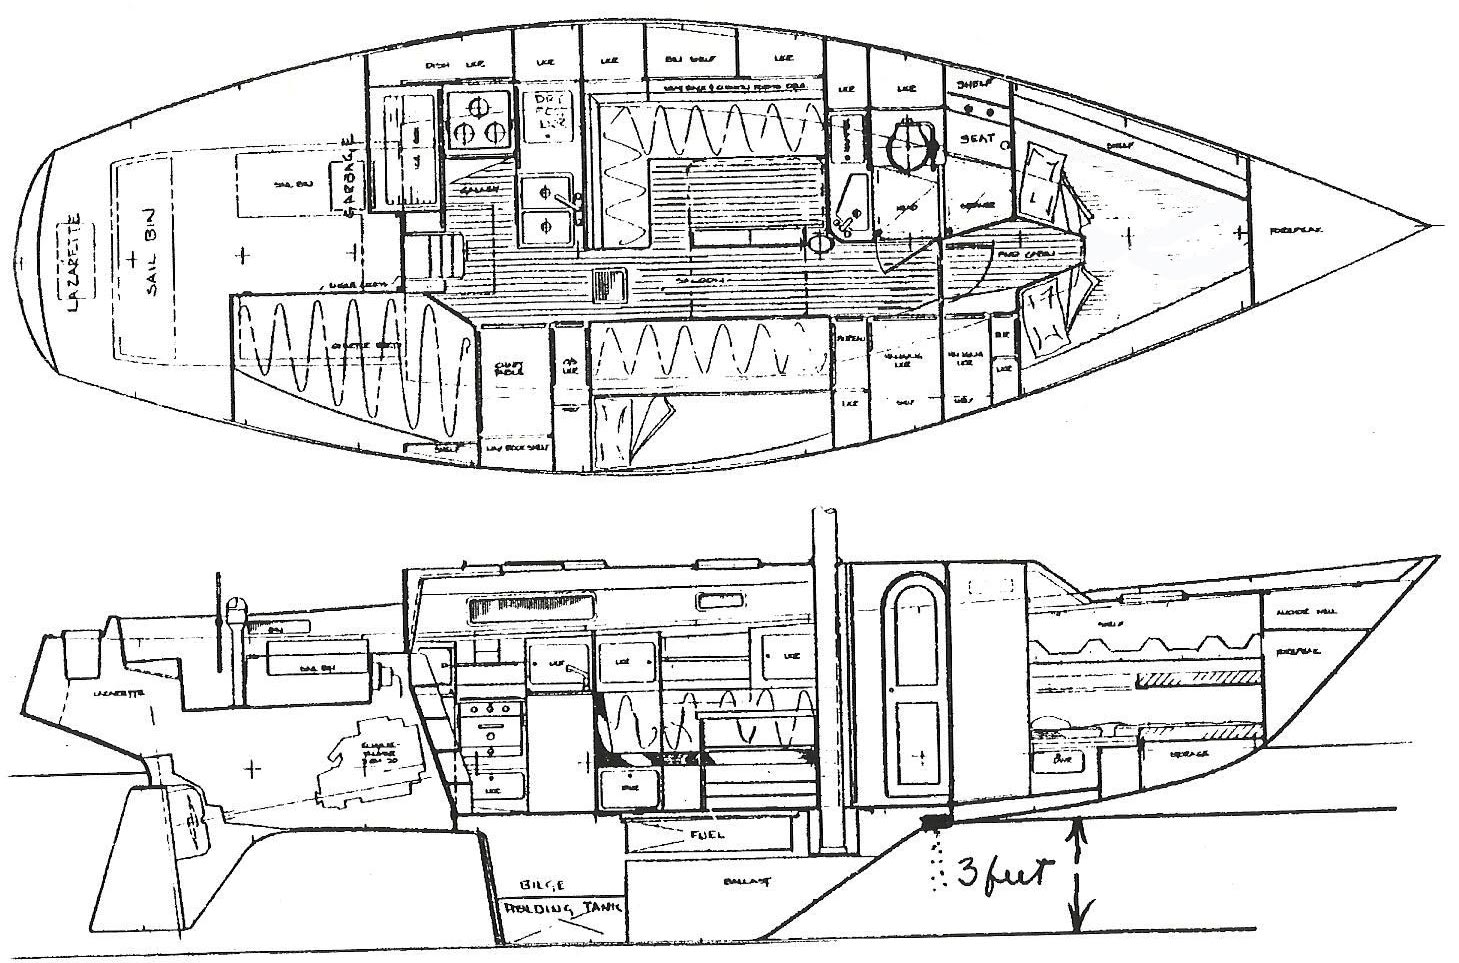 morgan sailboats diagrams